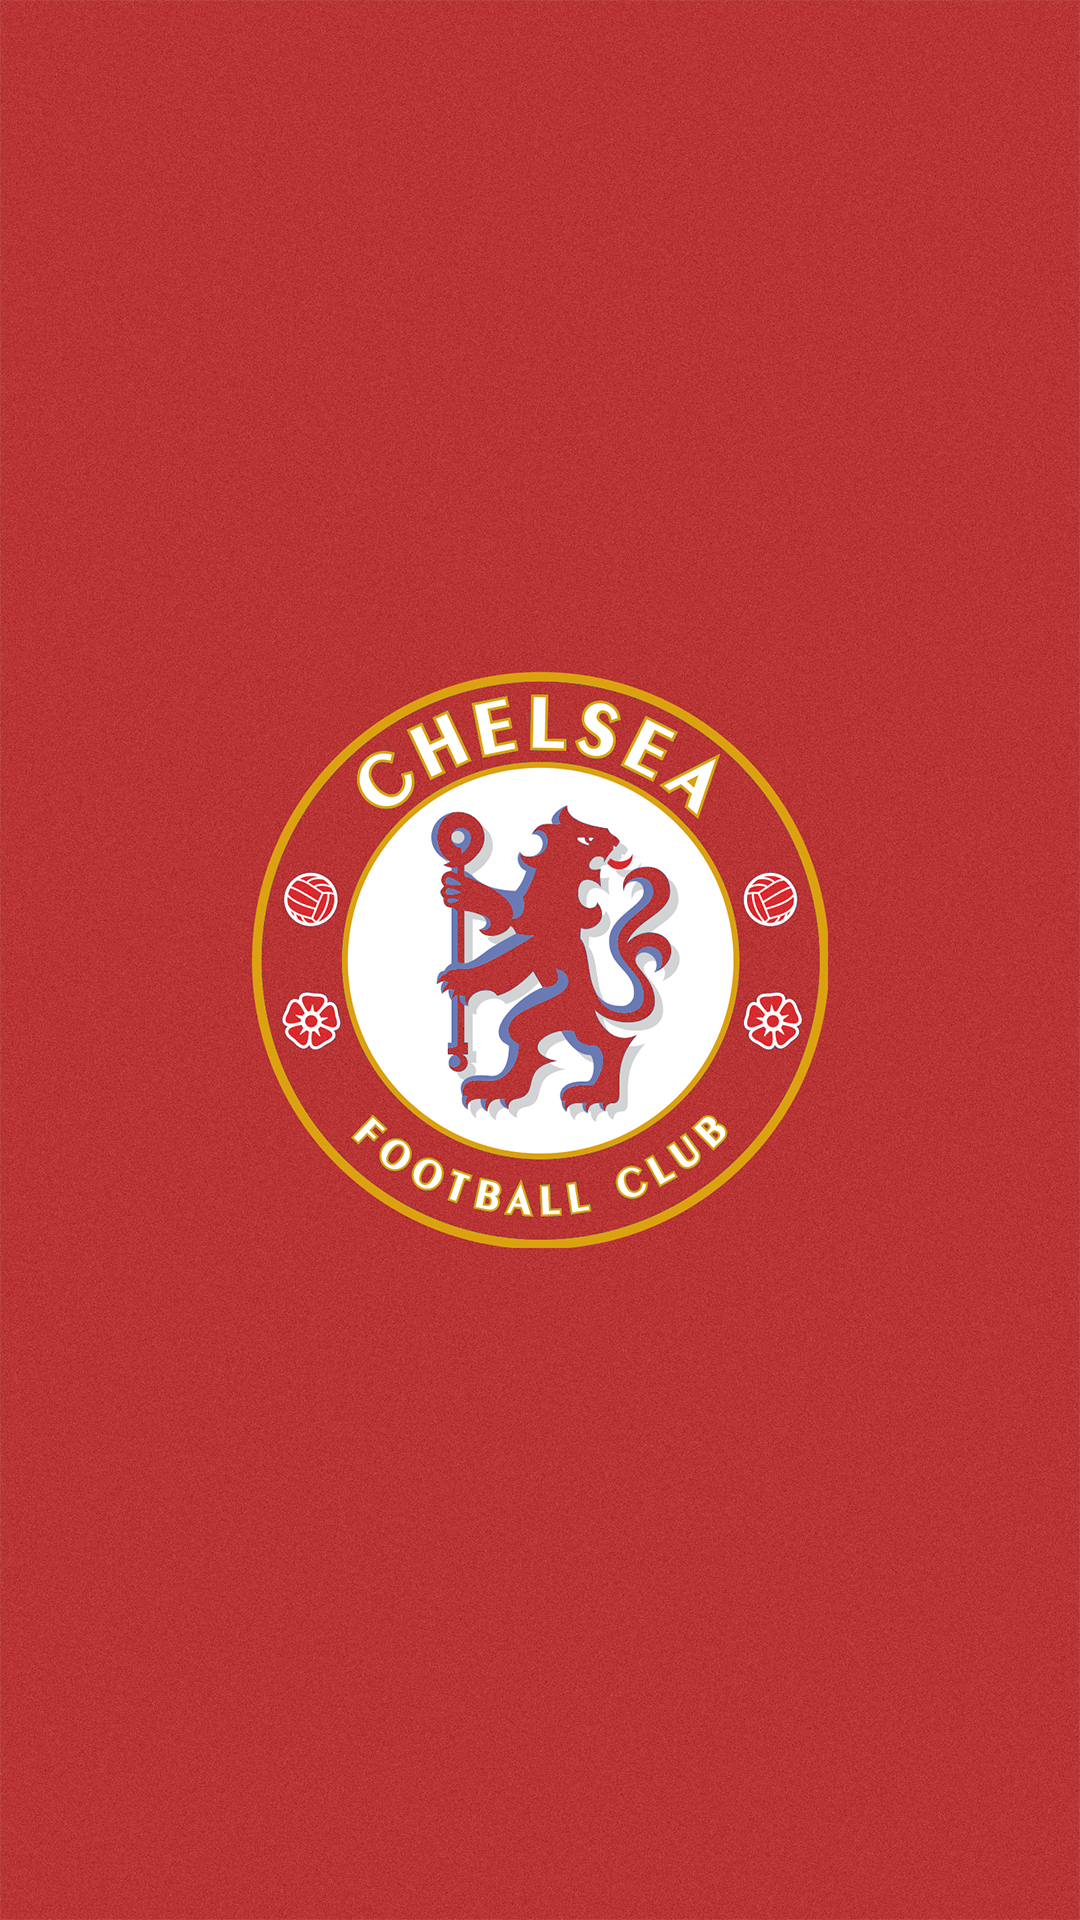 Chelsea wallpaper collection for free download hd wallpapers chelsea wallpaper collection for free download voltagebd Gallery